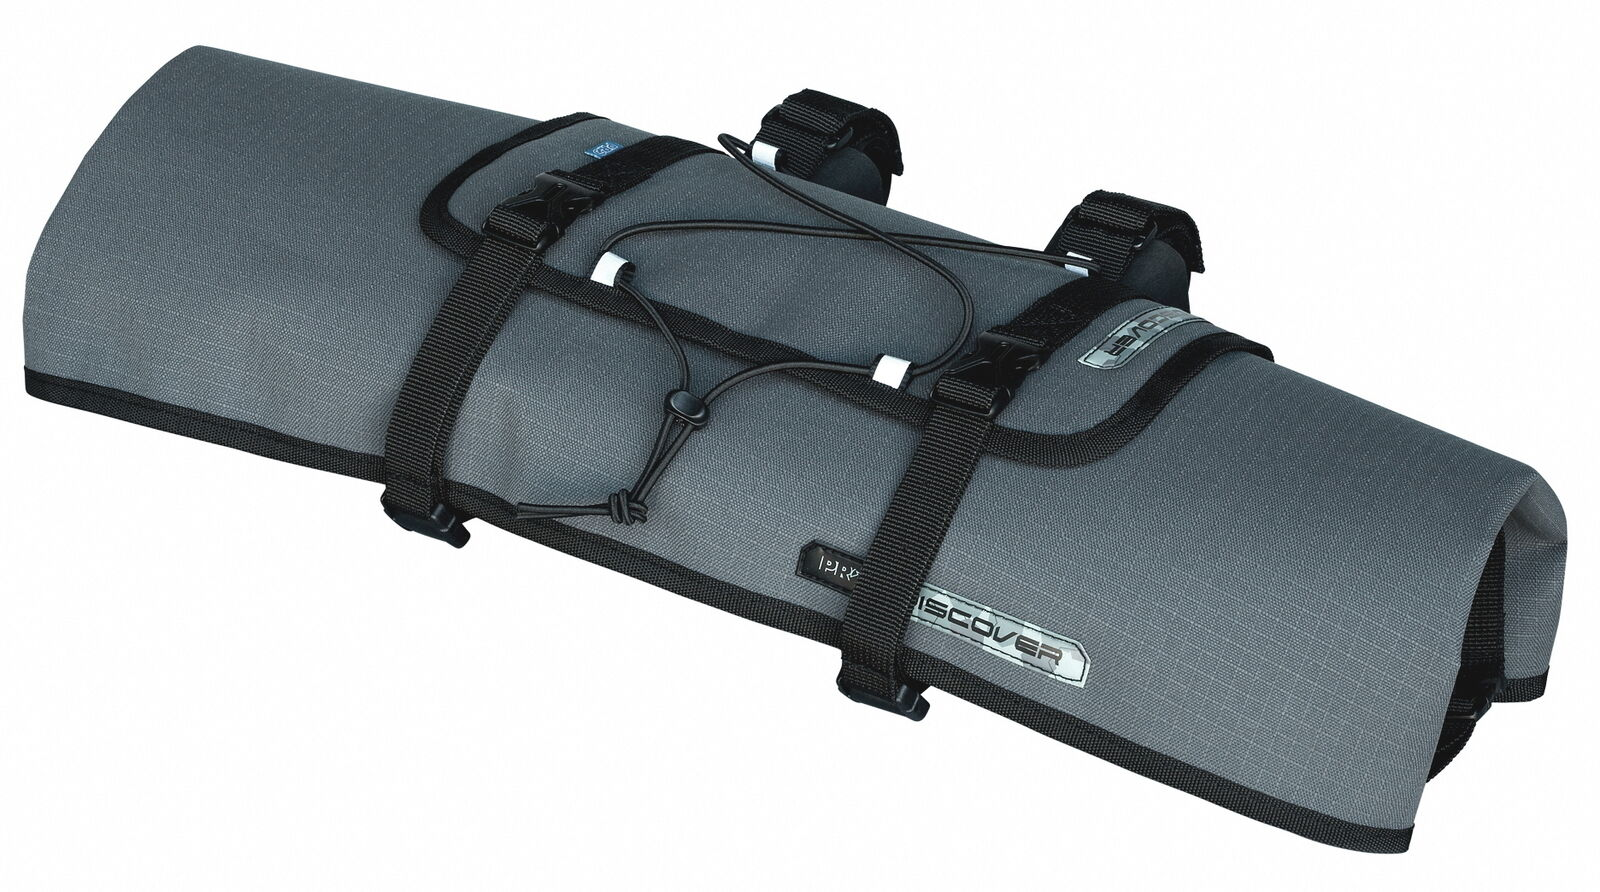 SHIMANO PRO  Discover Handlebar Bag 8L  clearance up to 70%